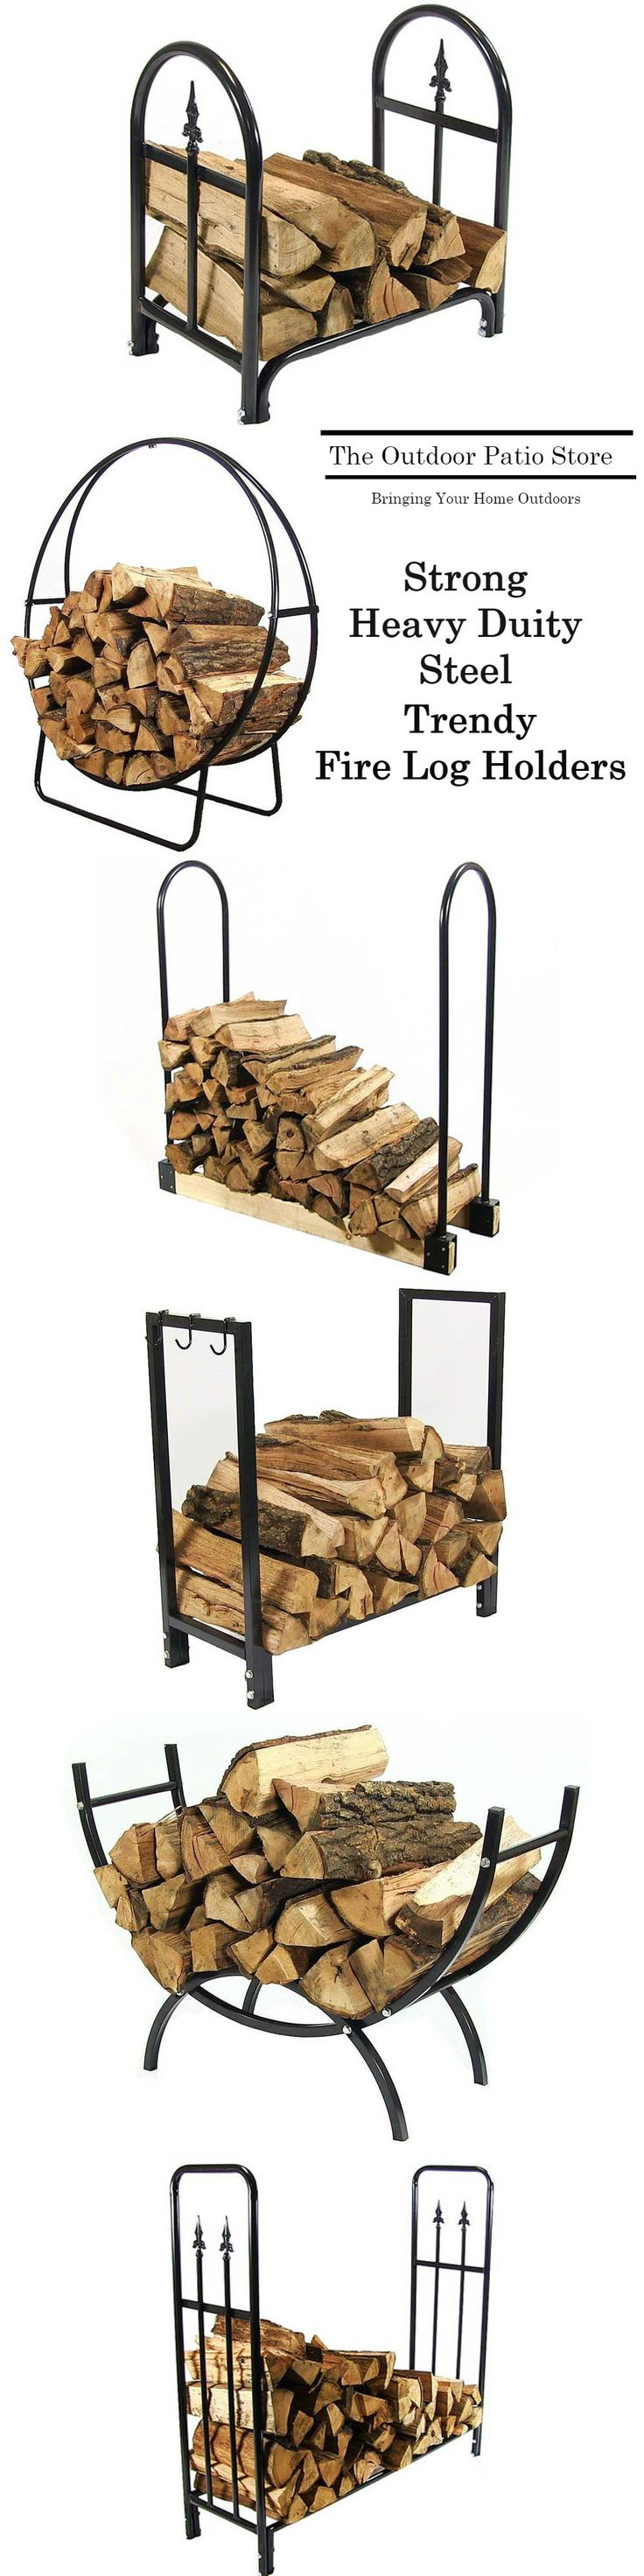 The Outdoor Patio Store has the absolute best fire log holders and outdoor fire supplies.